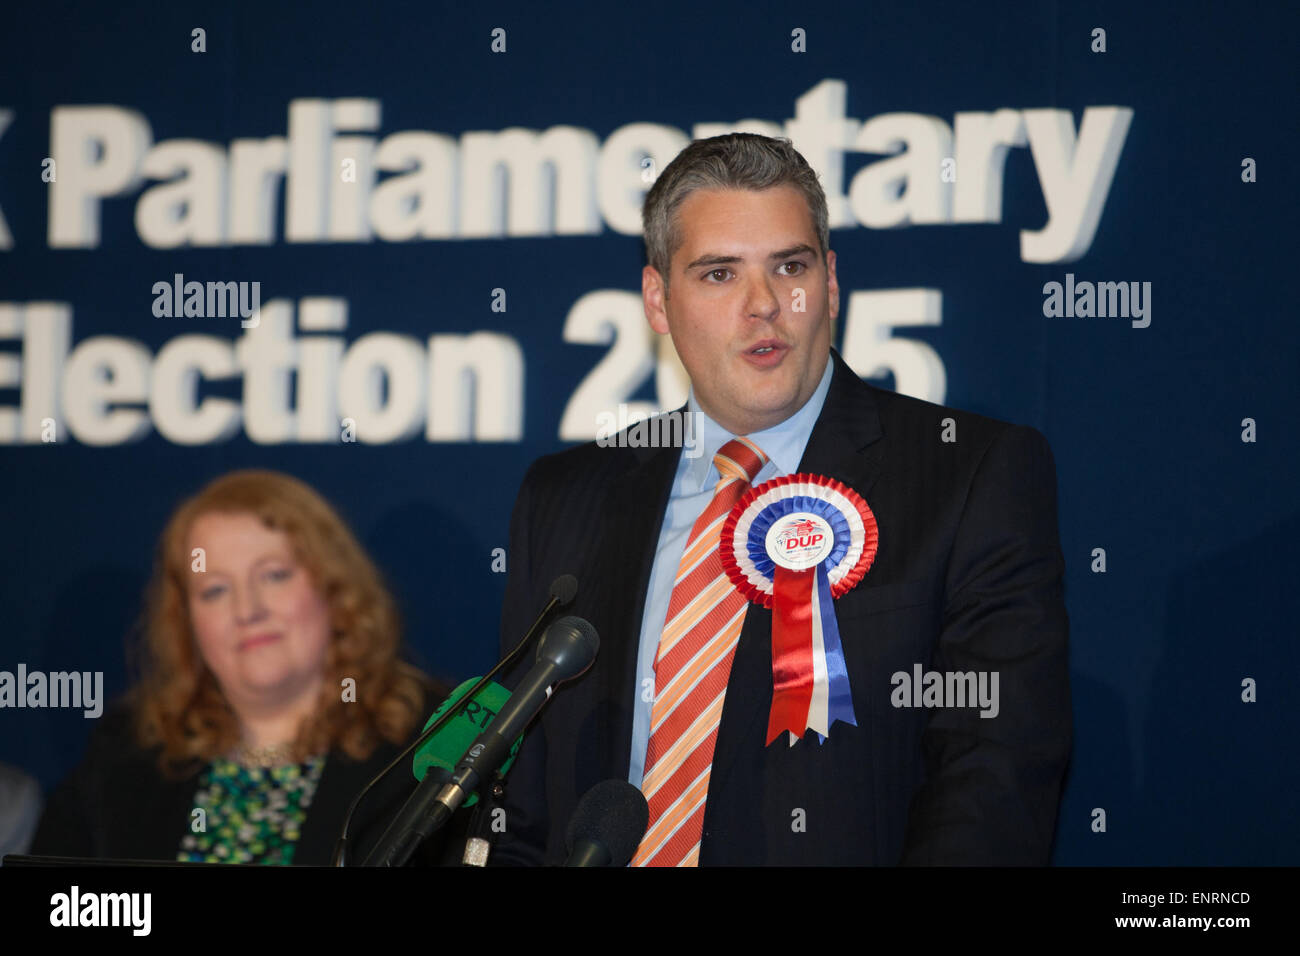 Belfast UK. 7th May 2015 General Election:  Gavin Robinson from the Democratic Unionist Party (DUP) giving his acceptance - Stock Image